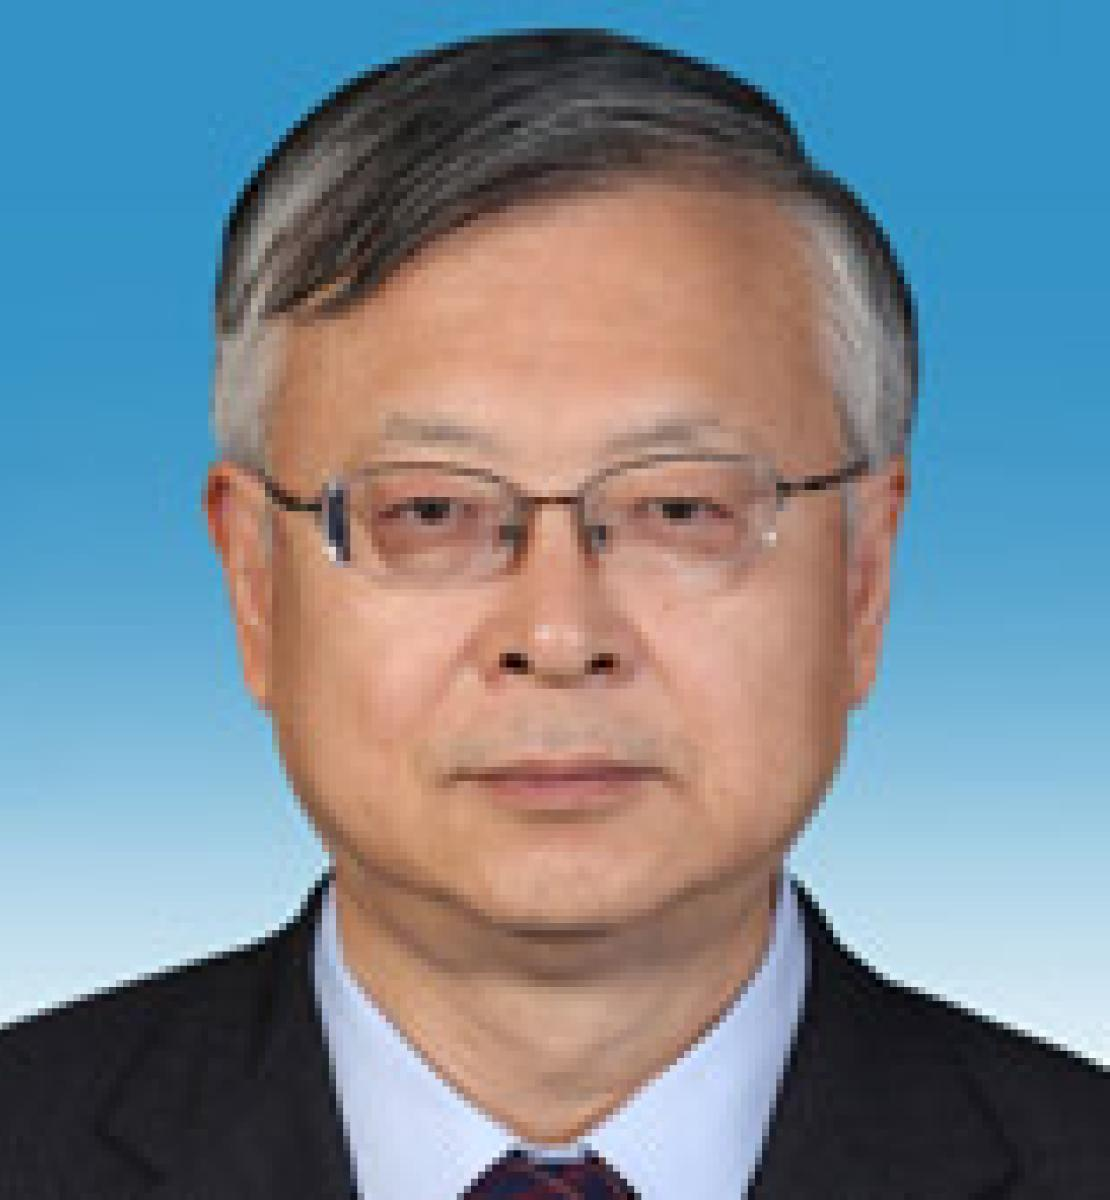 Head-to-shoulders close up of Sen Pang. He wears a dark suit, glasses and stands in front of a gradient blue background.